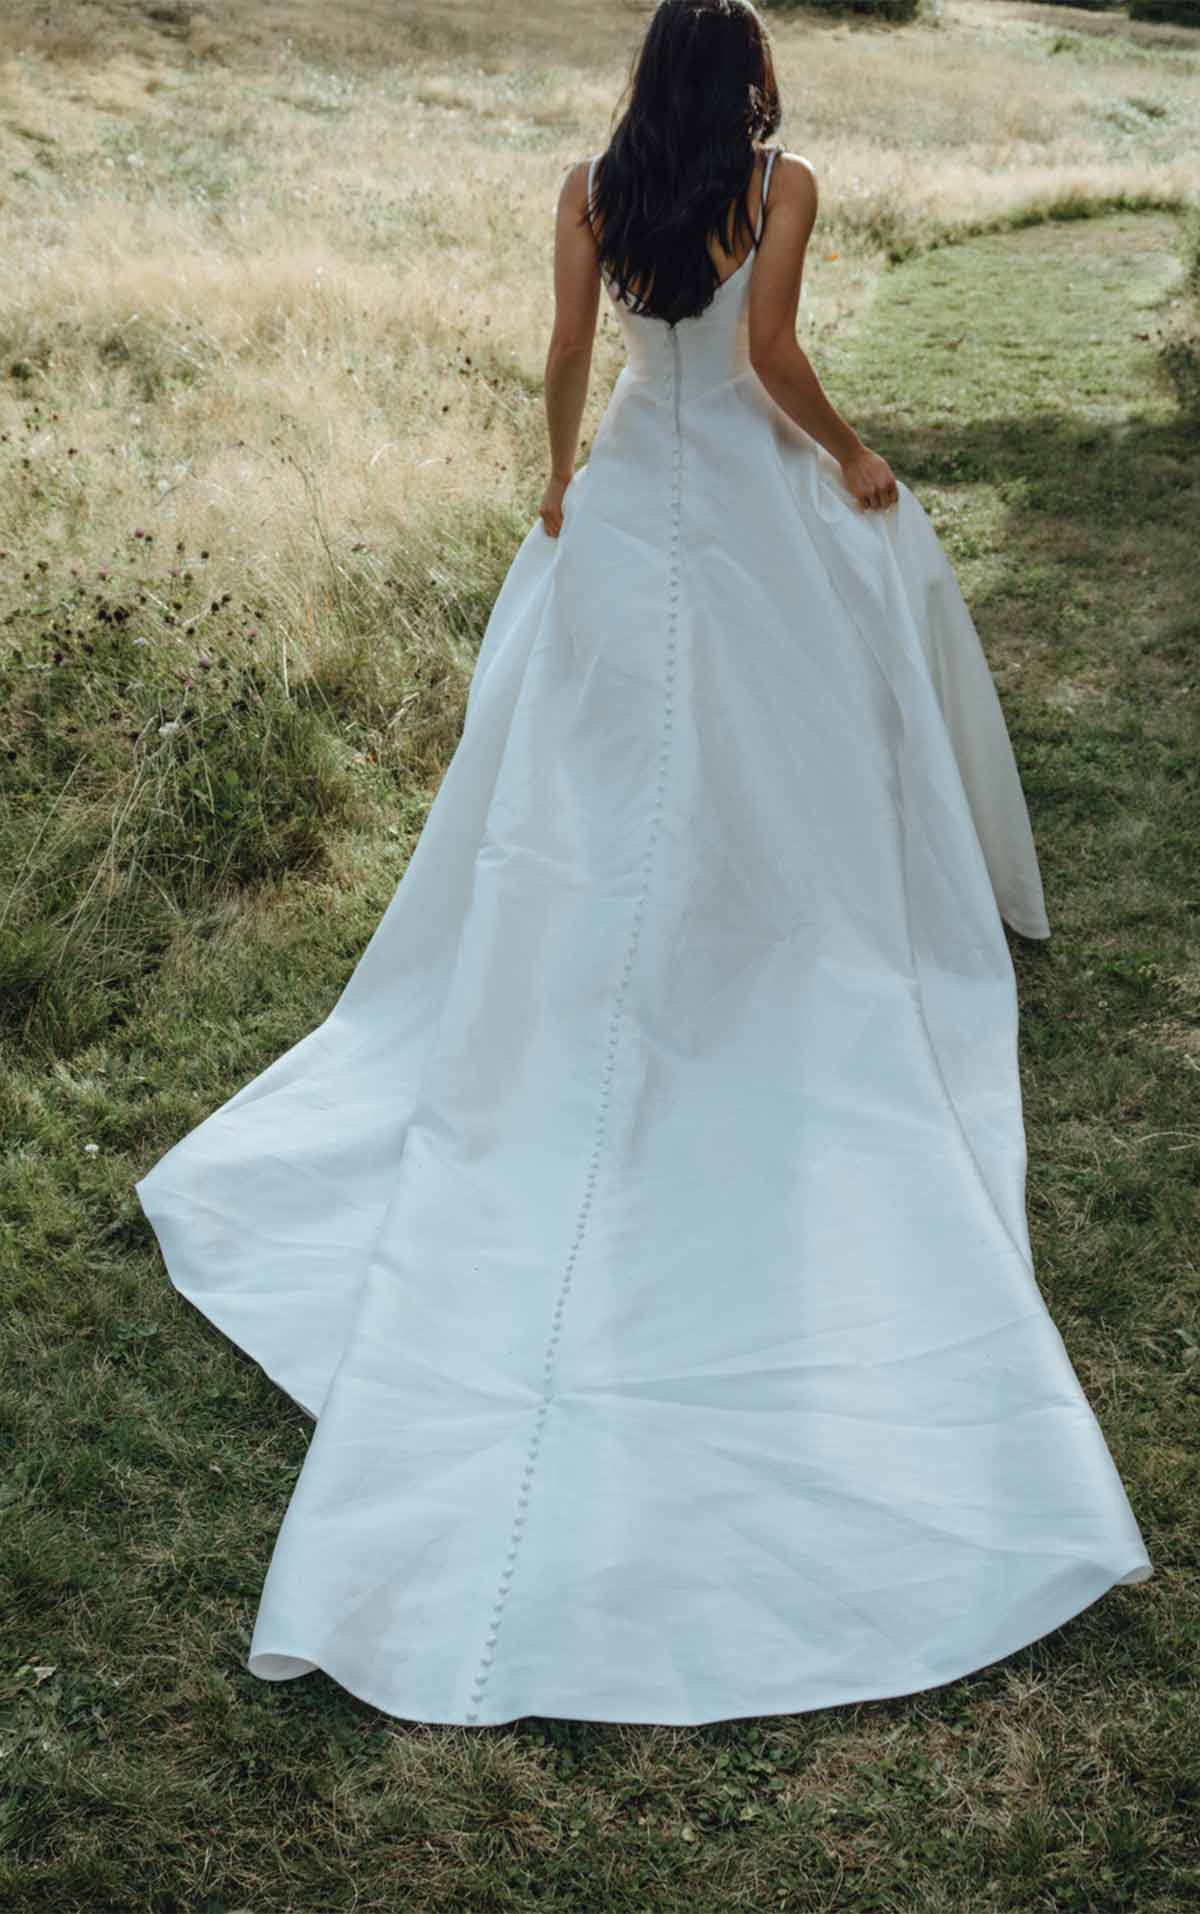 1310 Minimalist Structured Wedding Ballgown with Pockets by Martina Liana